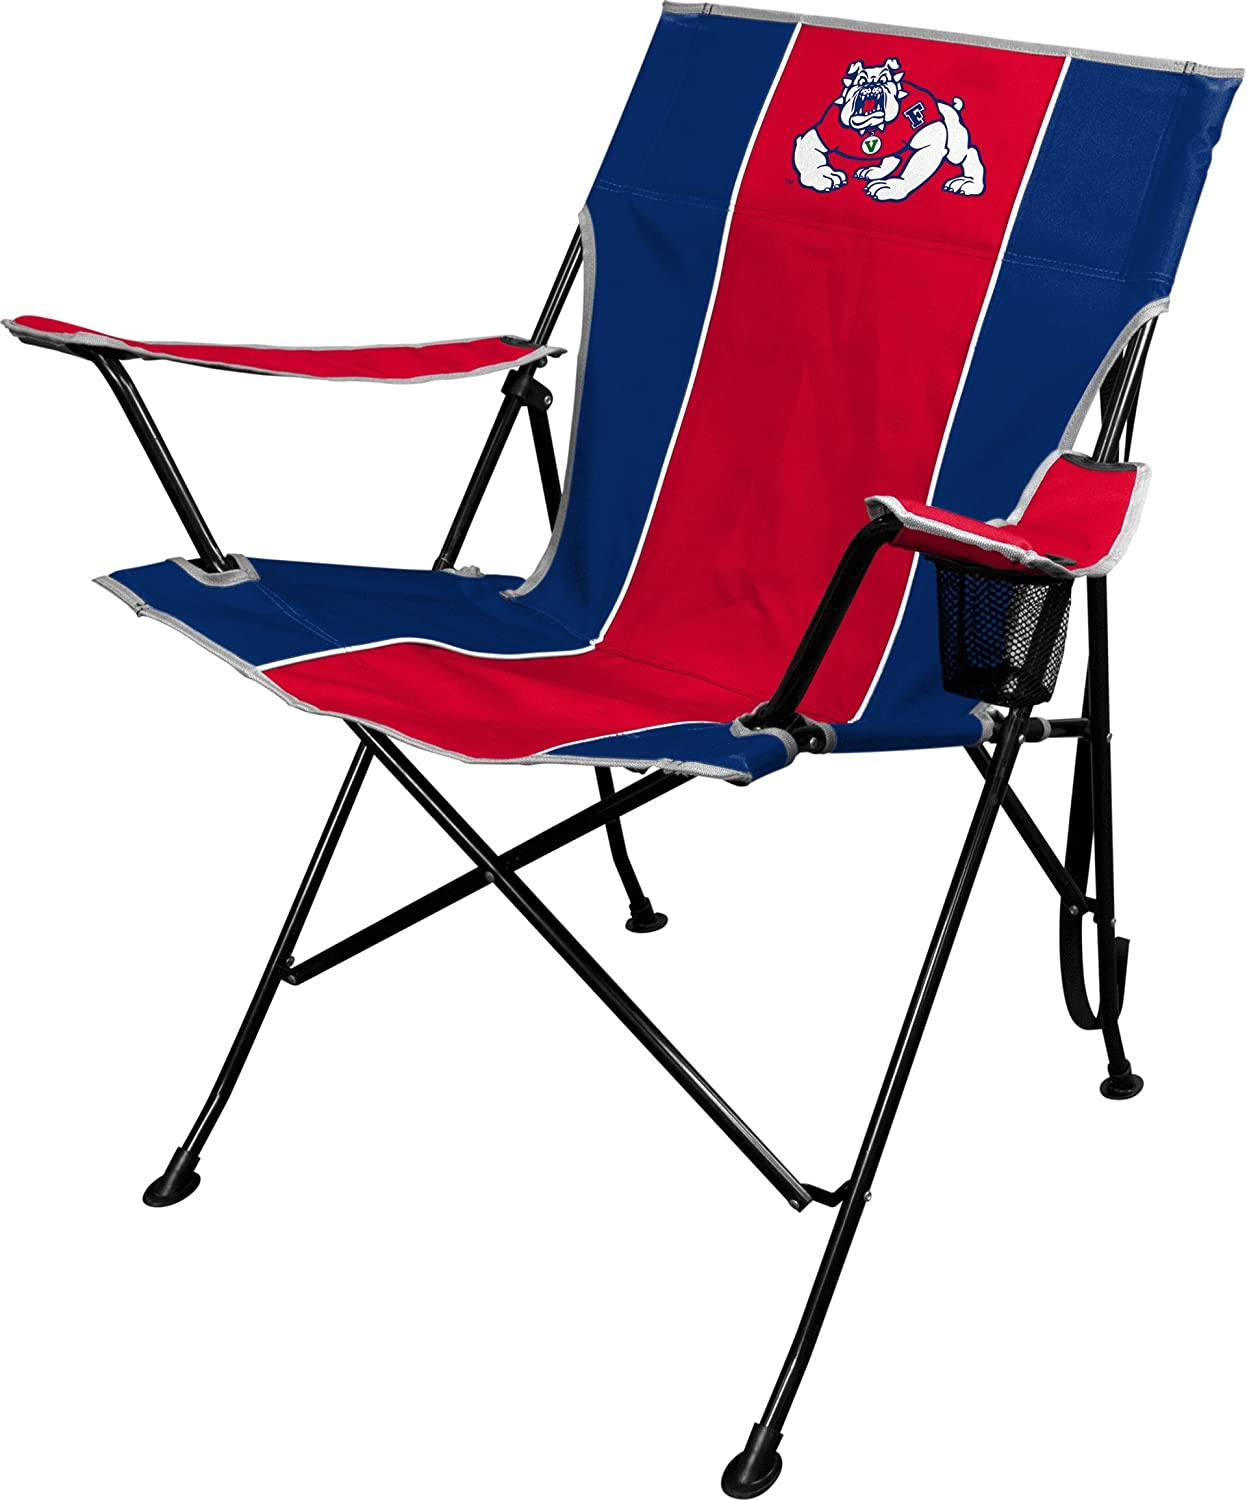 Amazon.com: Silla plegable NCAA con portavasos y funda de ...